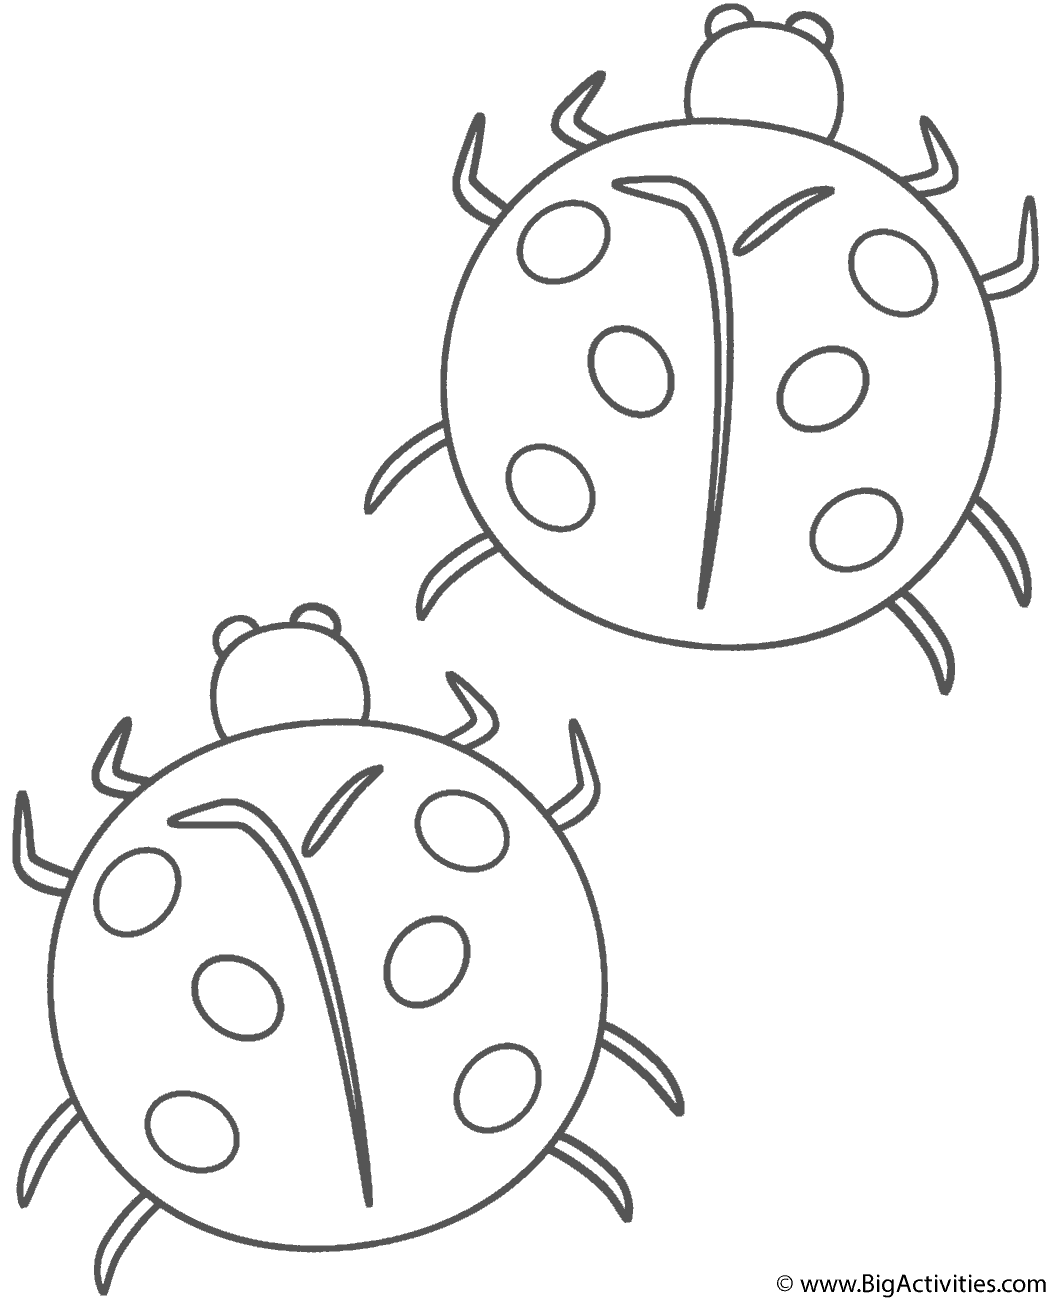 ladybug coloring images two ladybugs coloring page insects images coloring ladybug